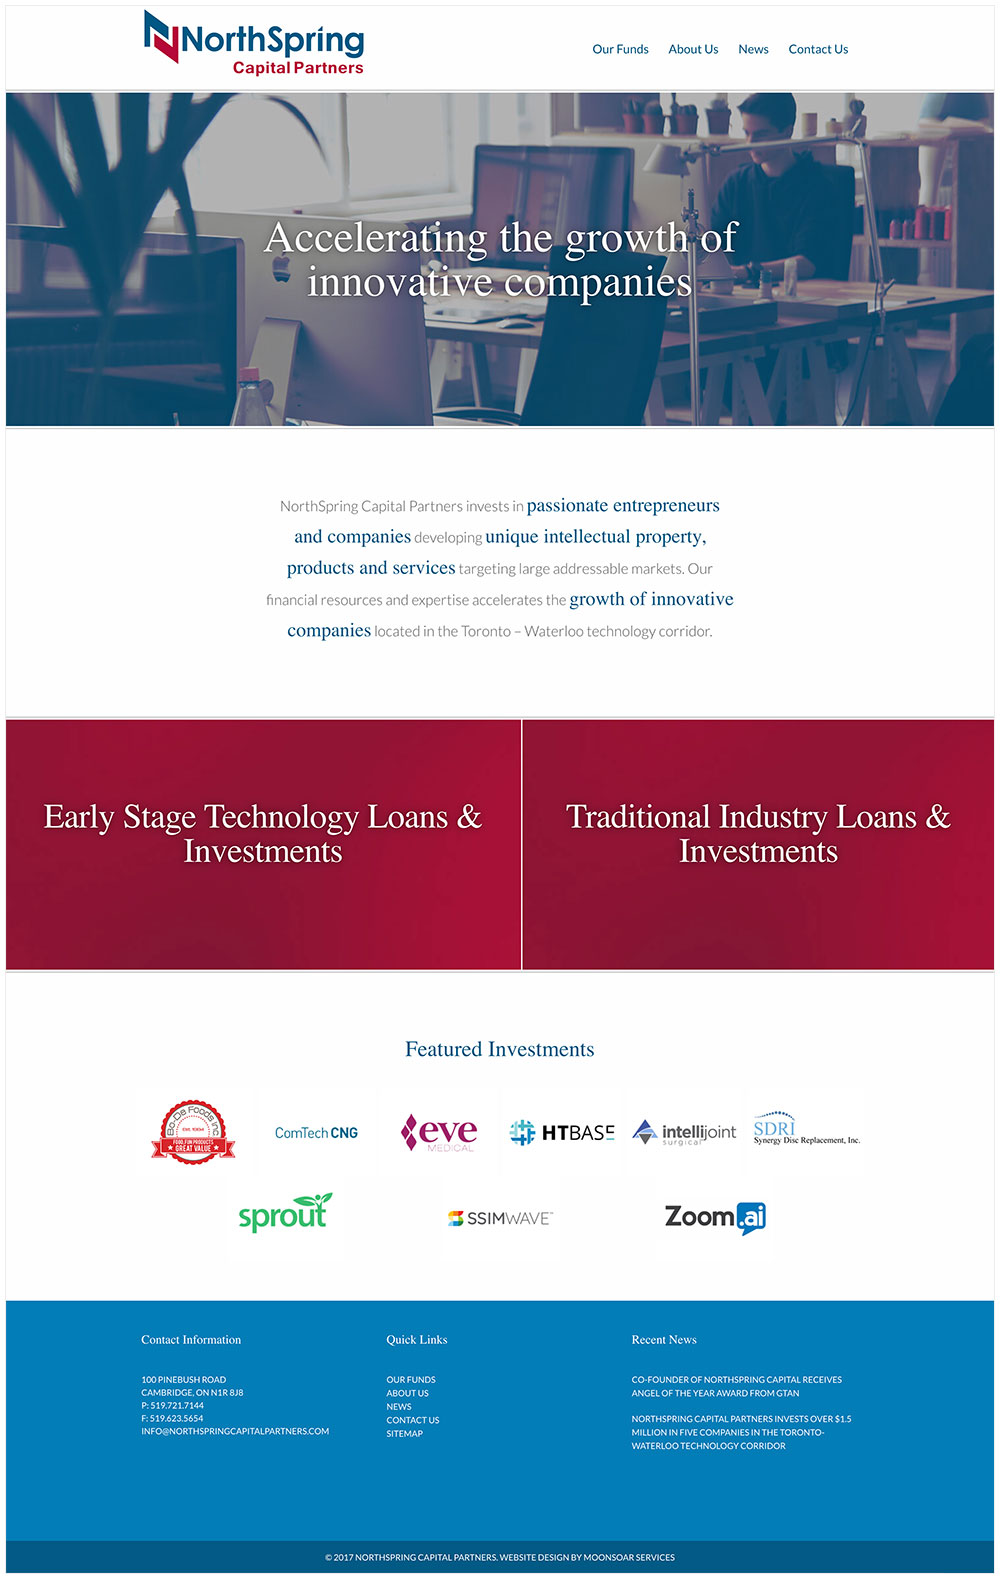 NorthSpring Capital Partners Website